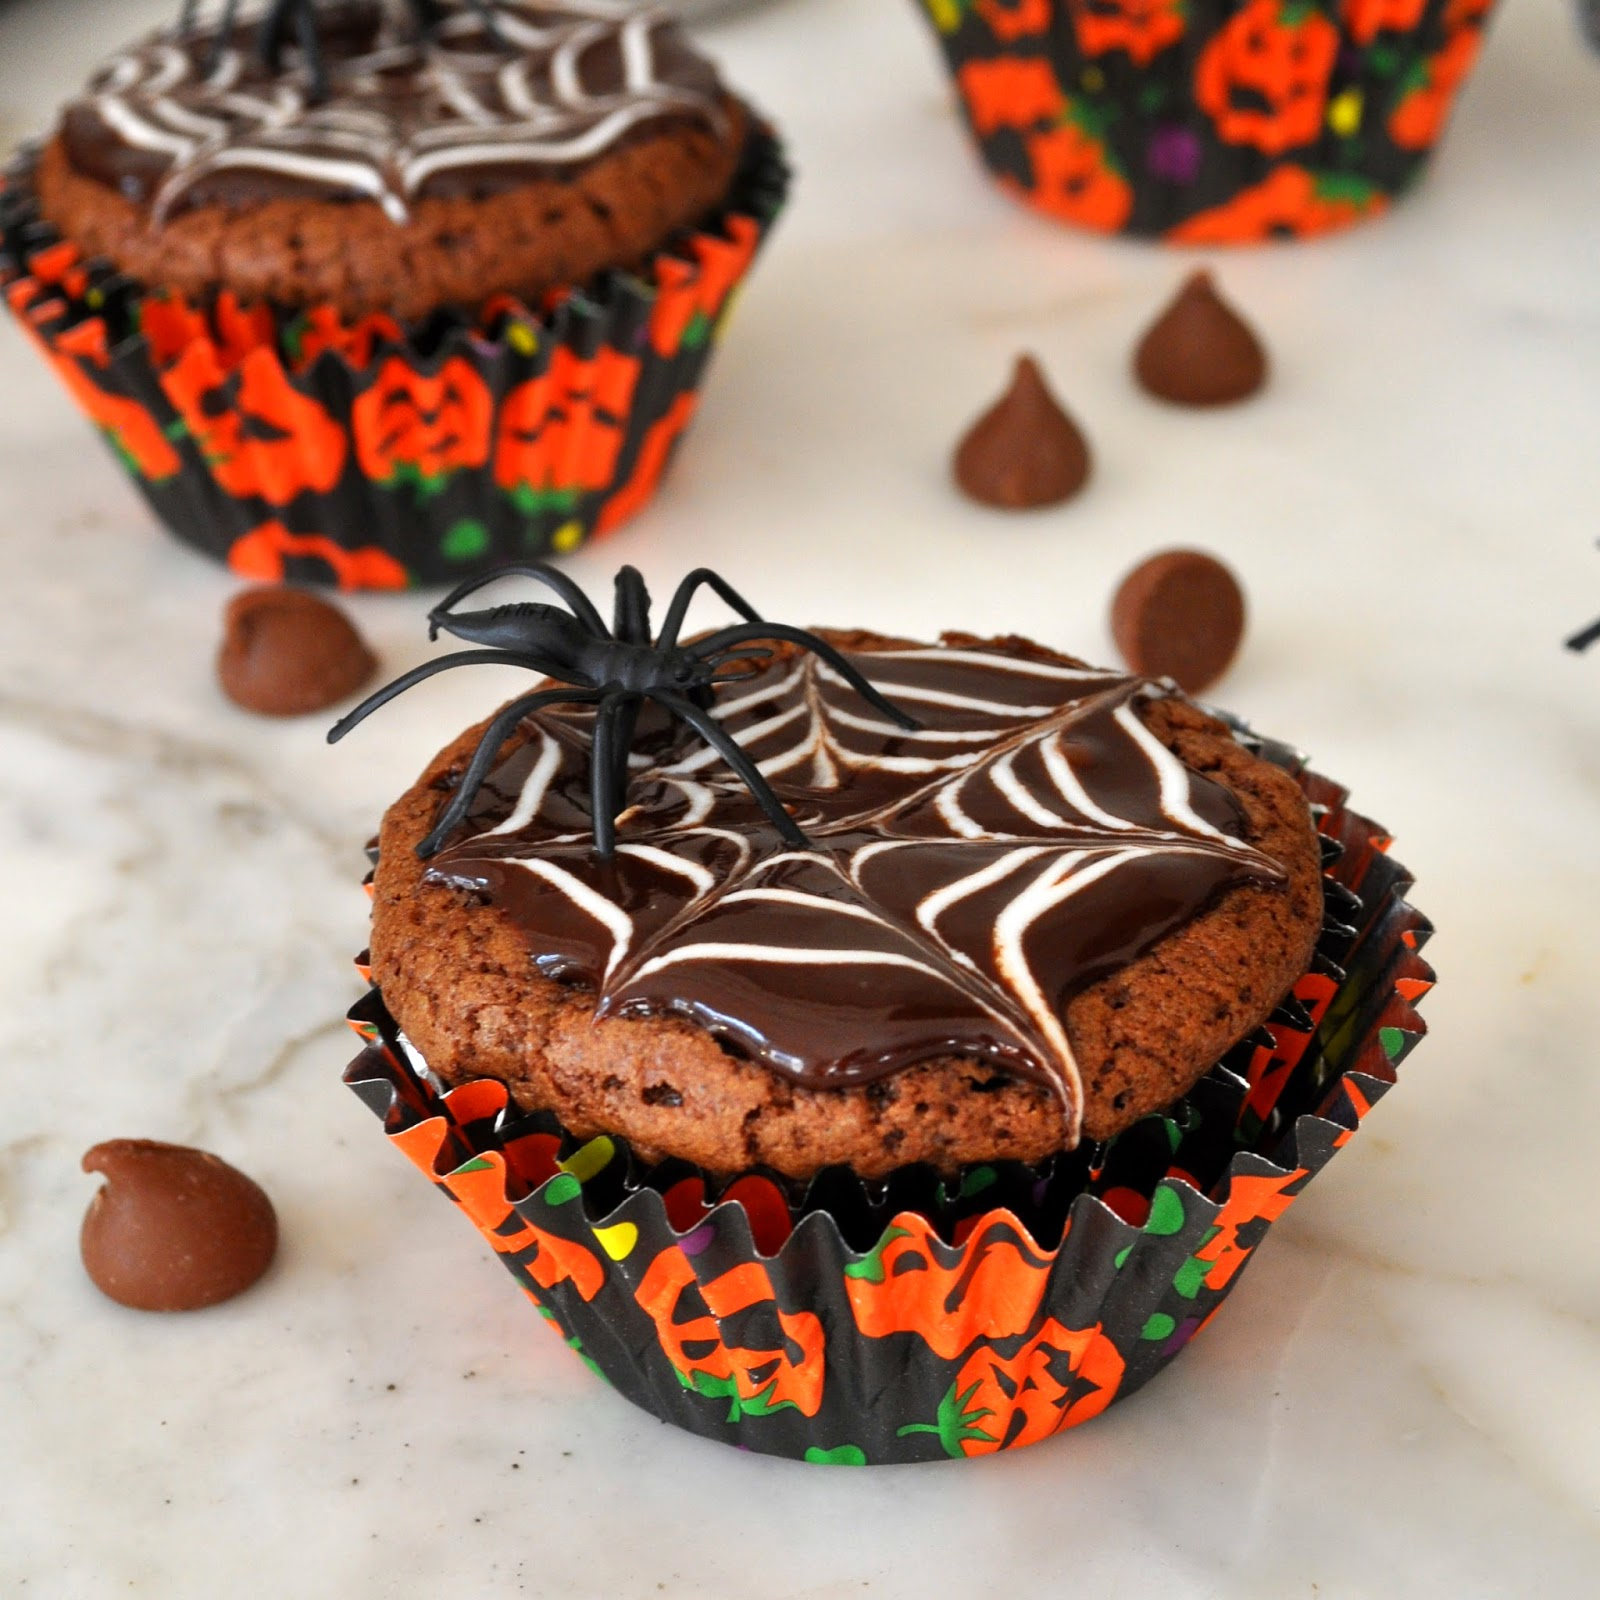 Cooking with manuela homemade halloween brownie cupcakes recipe homemade halloween brownie cupcakes recipe forumfinder Choice Image